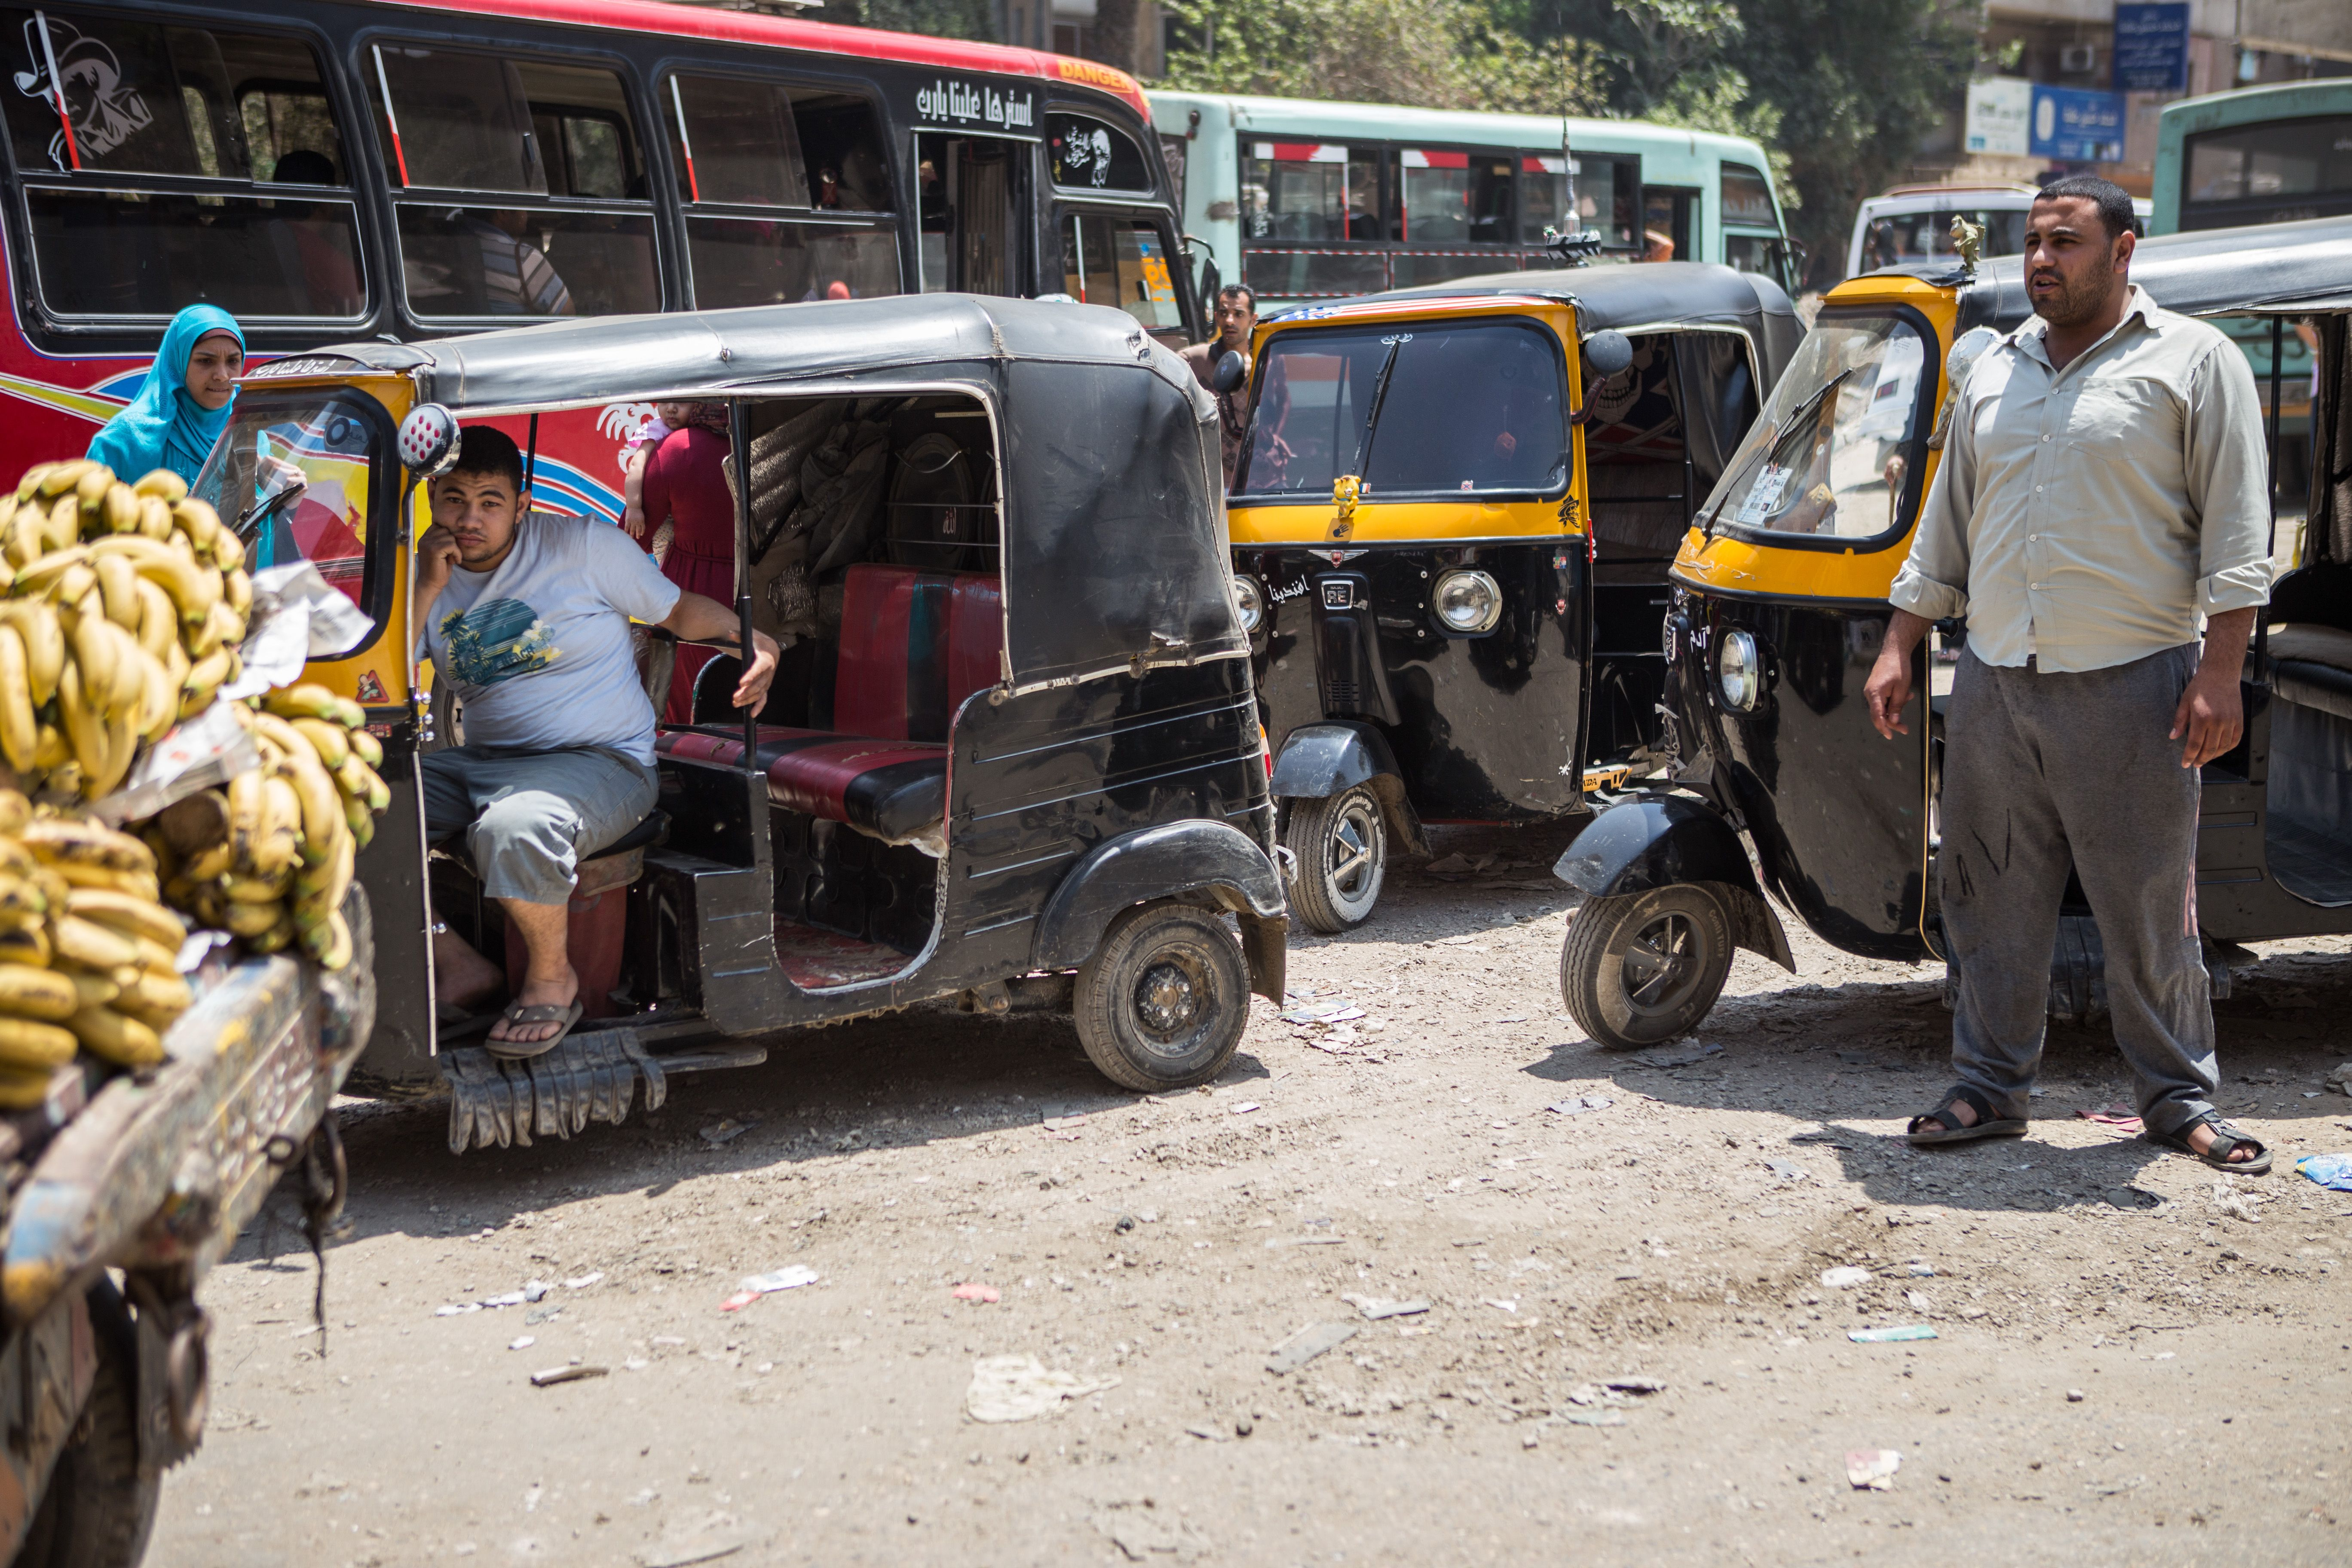 Tuk tuks, buses, cars and pedestrians compete for space on busy streets. May 1, 2014